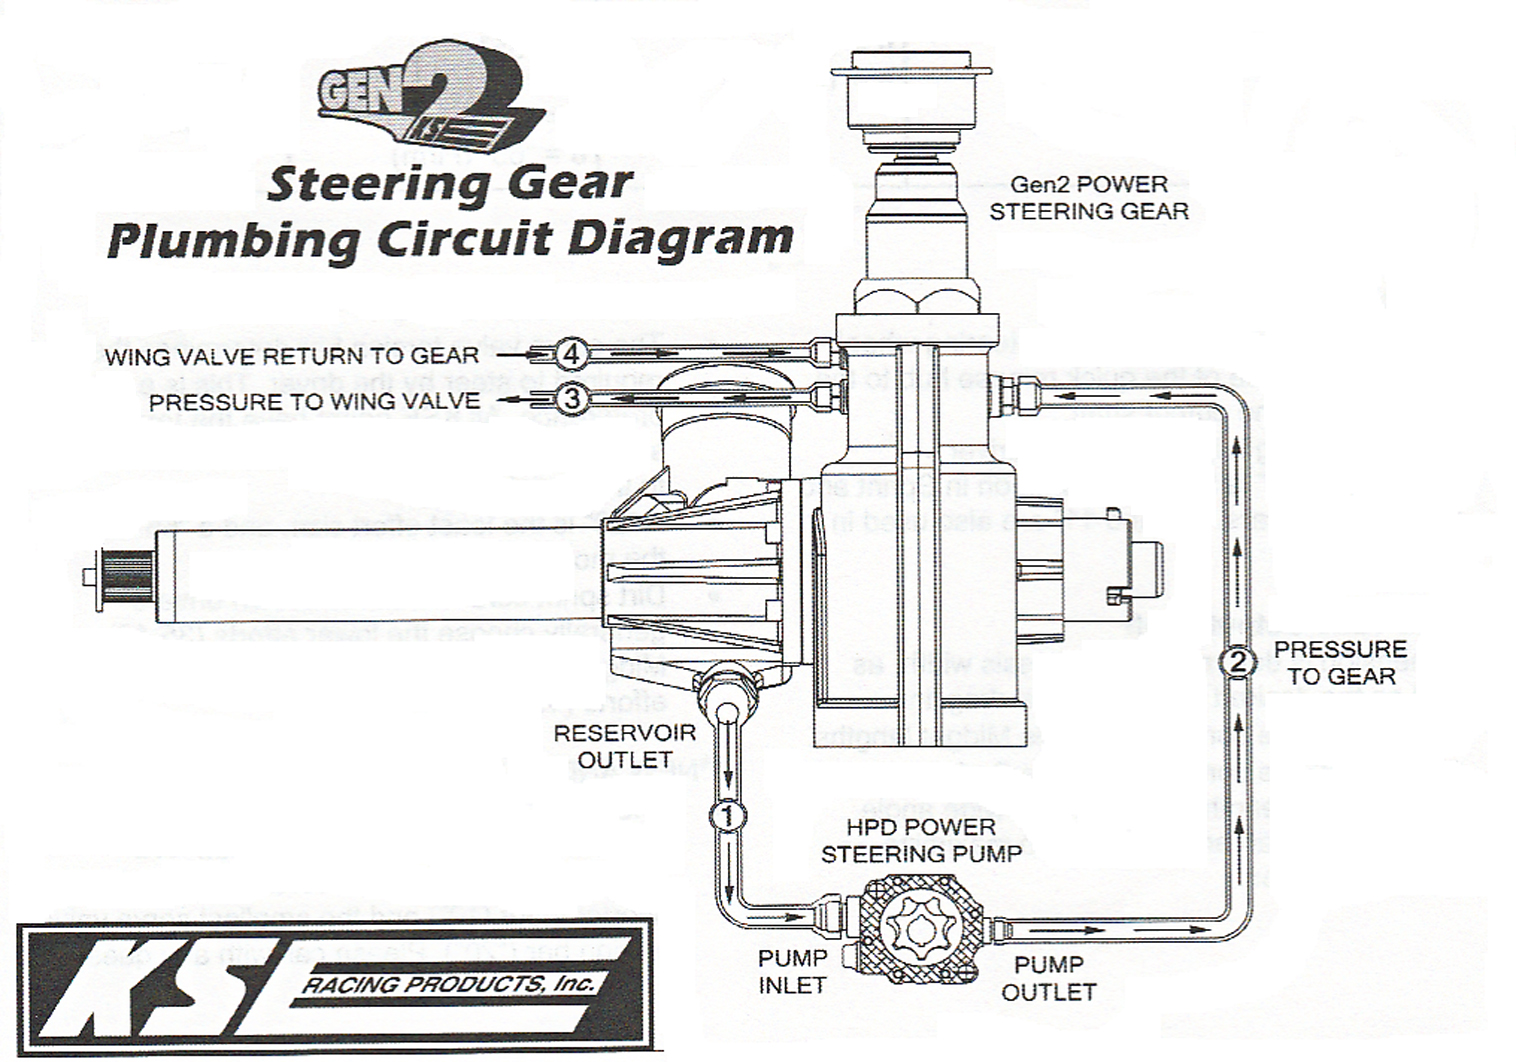 gen2 plumbing diagram sprint car parts gen2 plumbing diagram